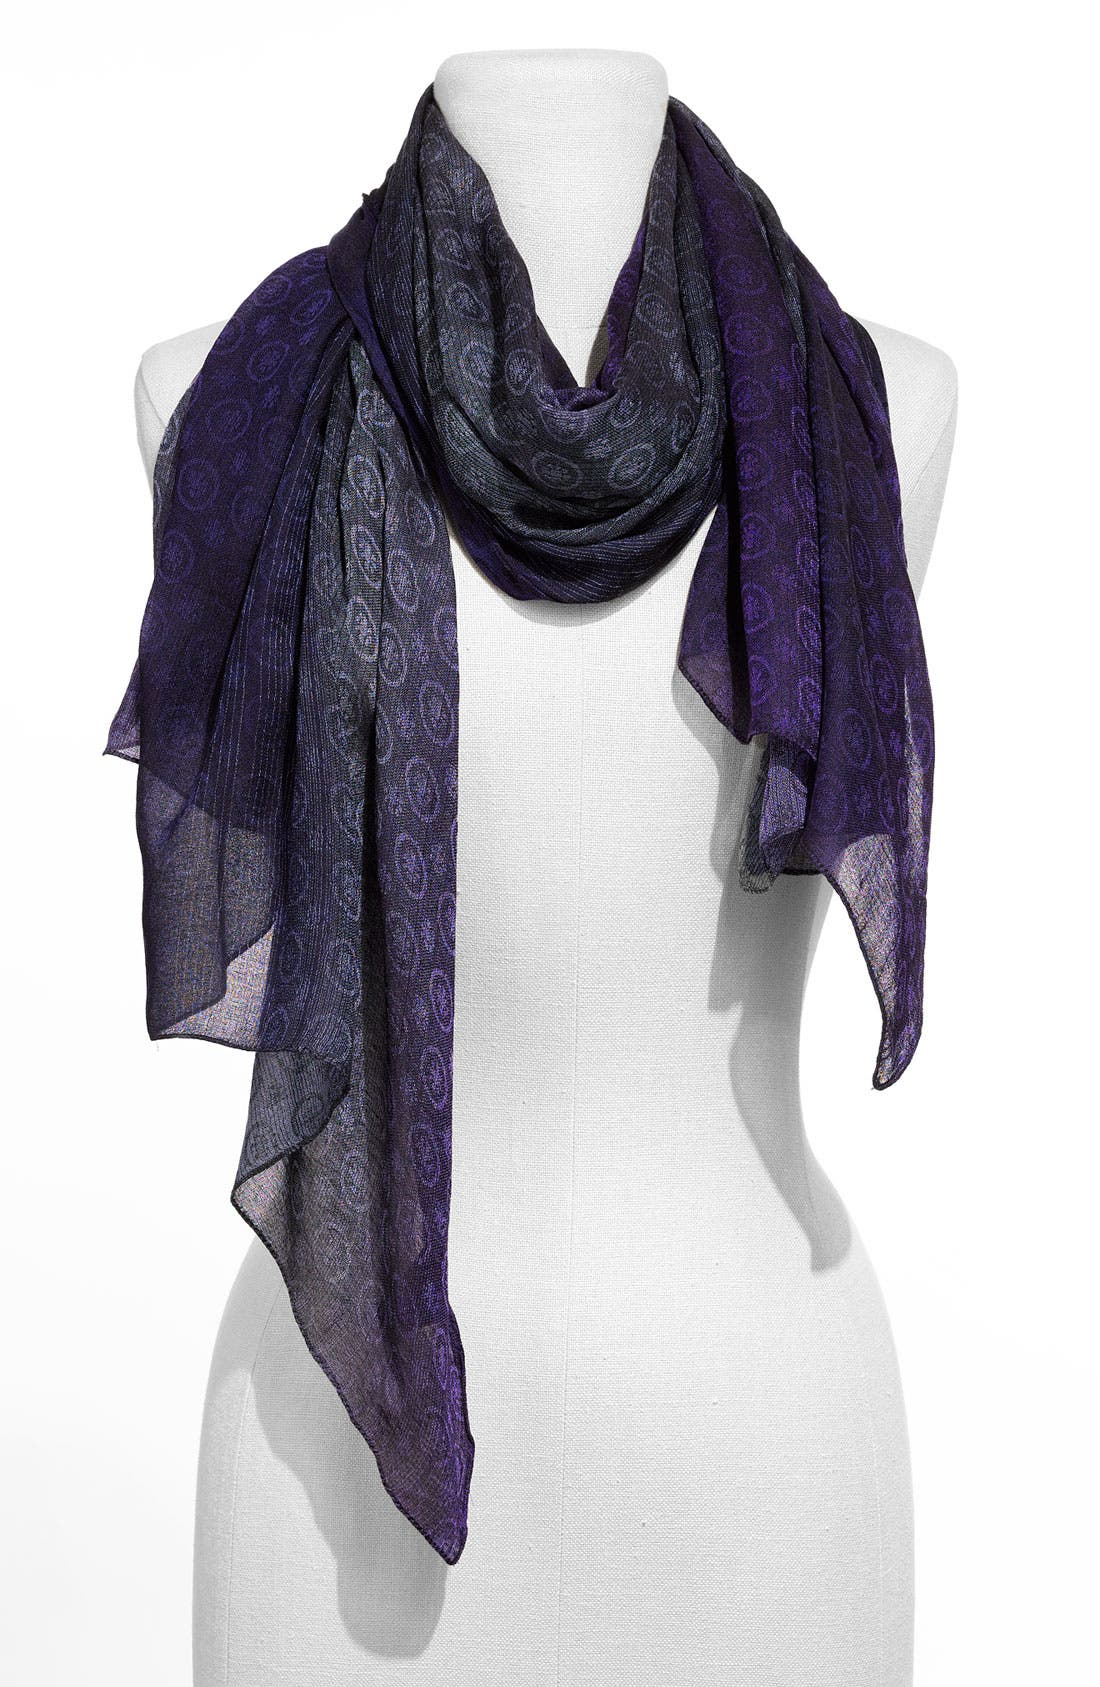 Main Image - Nordstrom Collection Patterned Ombré Scarf